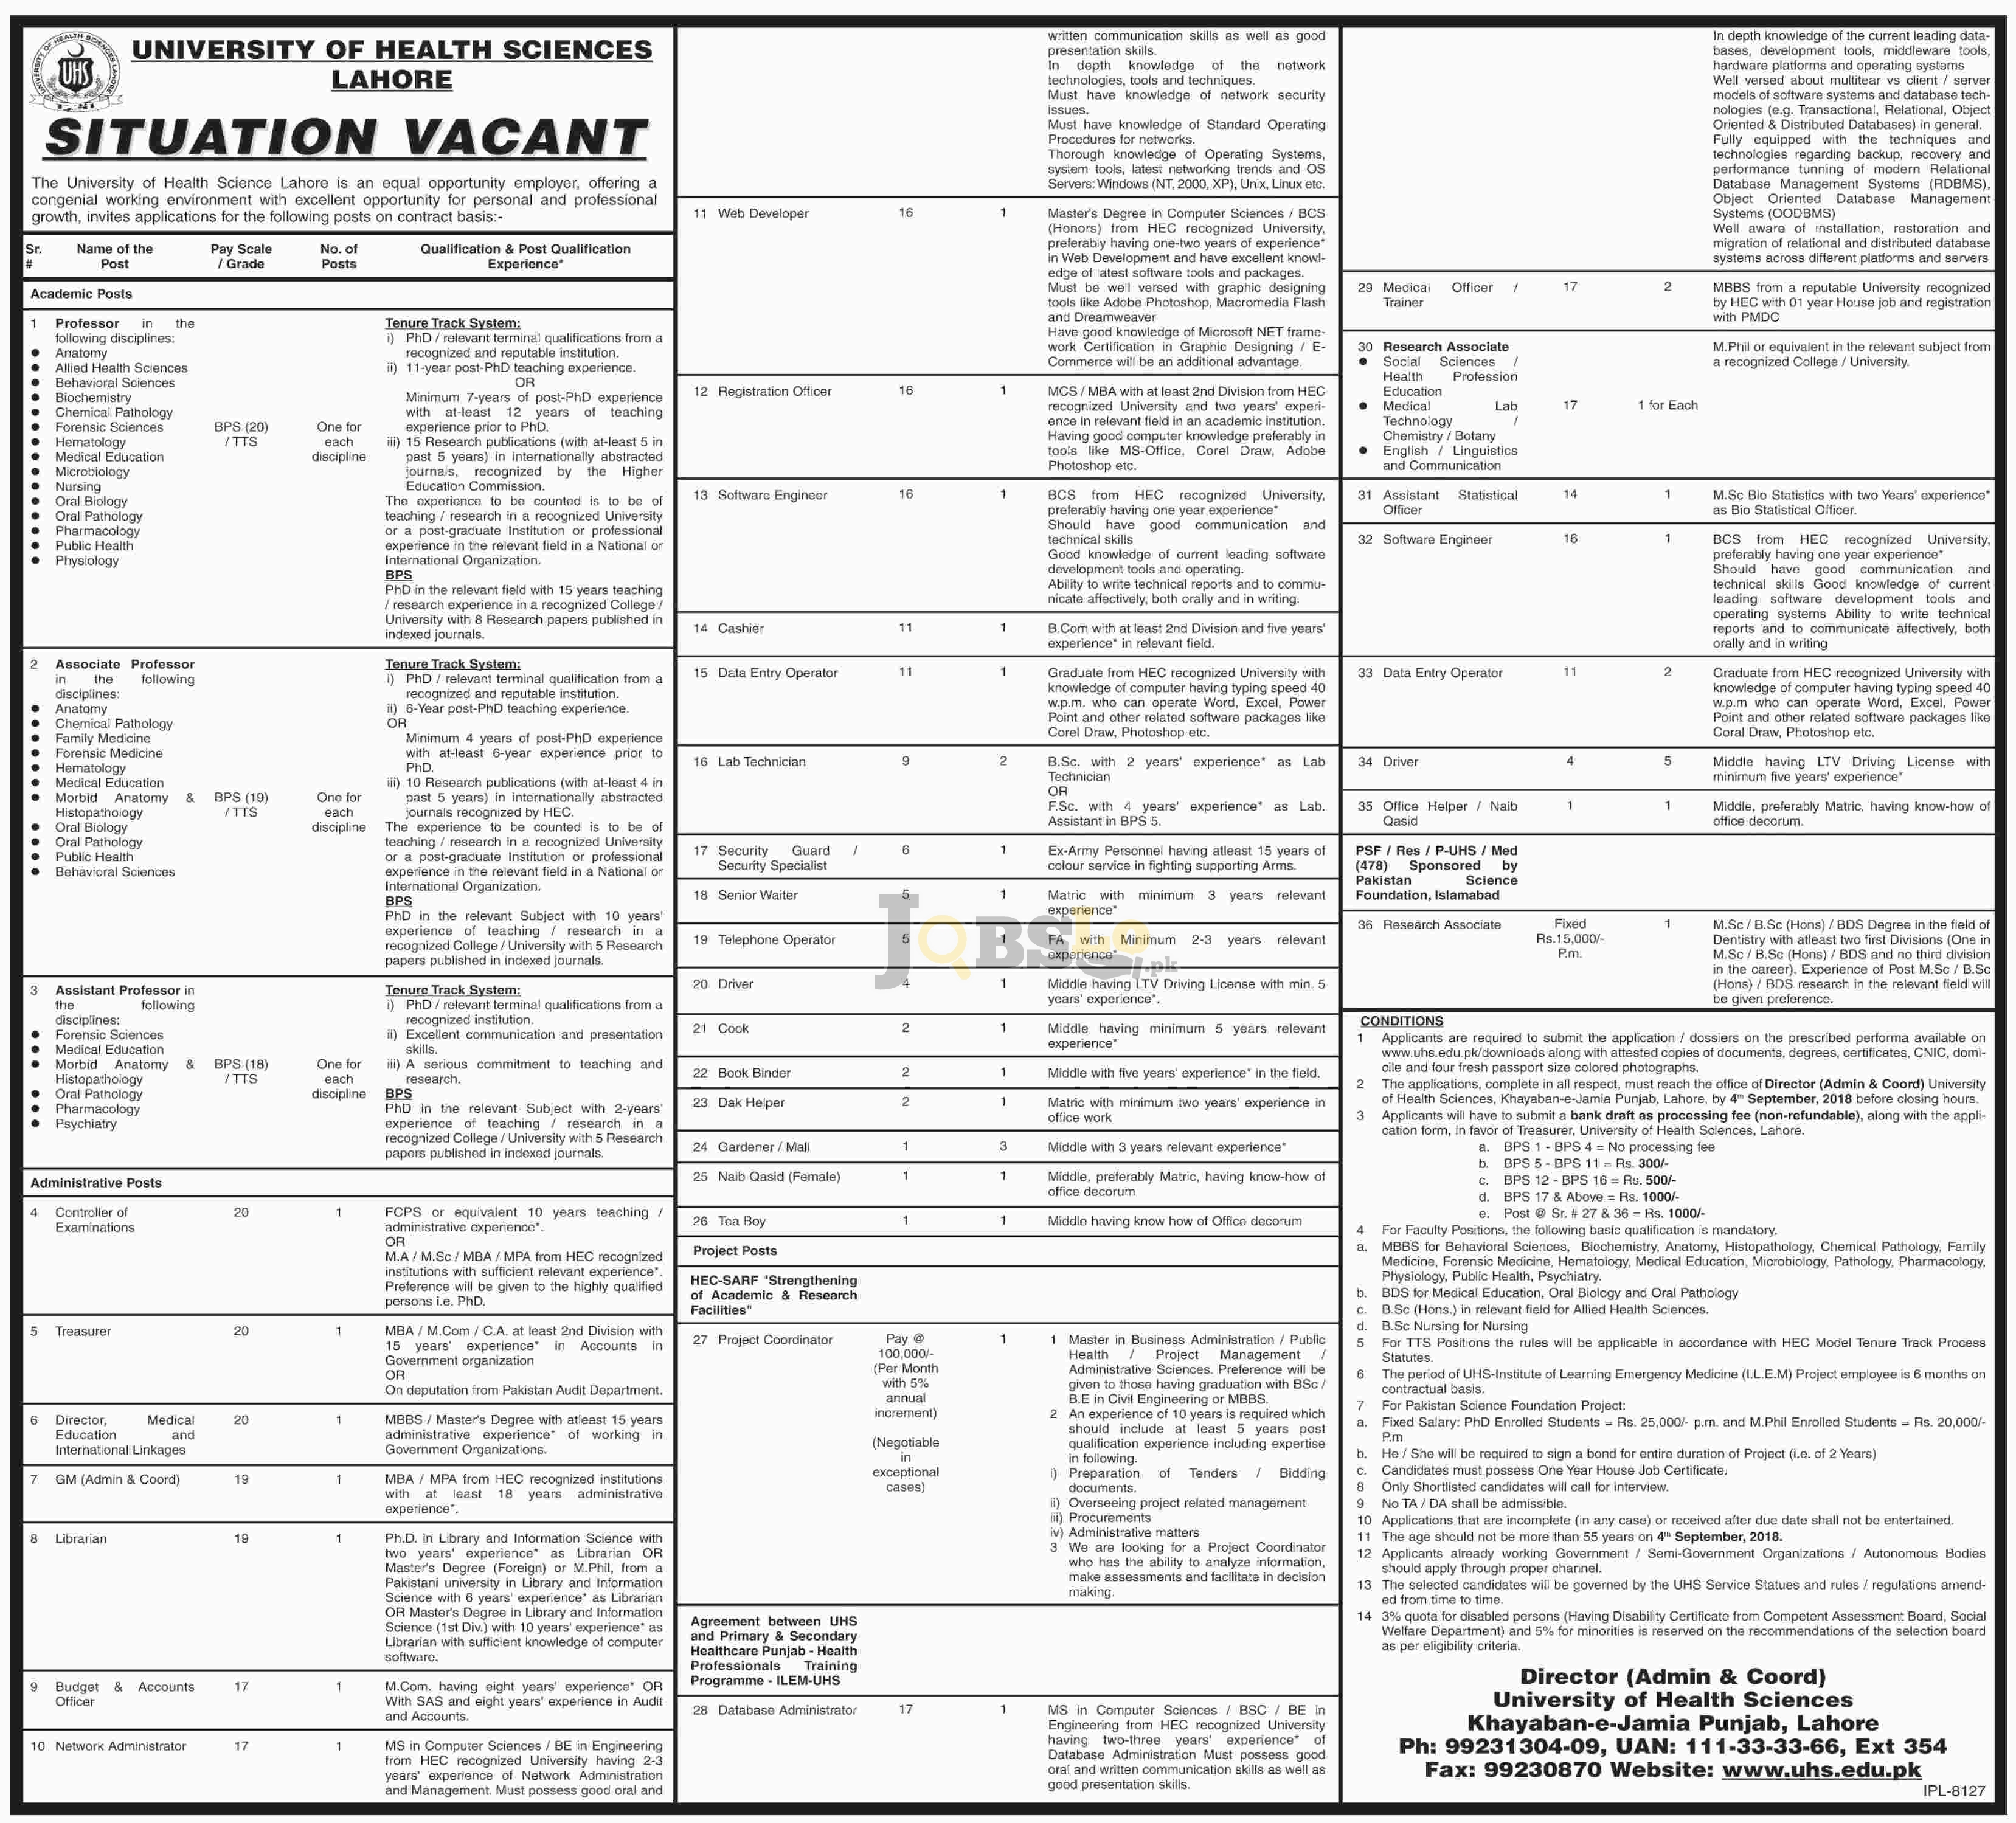 UHS Lahore Jobs 2018 Application Form Download